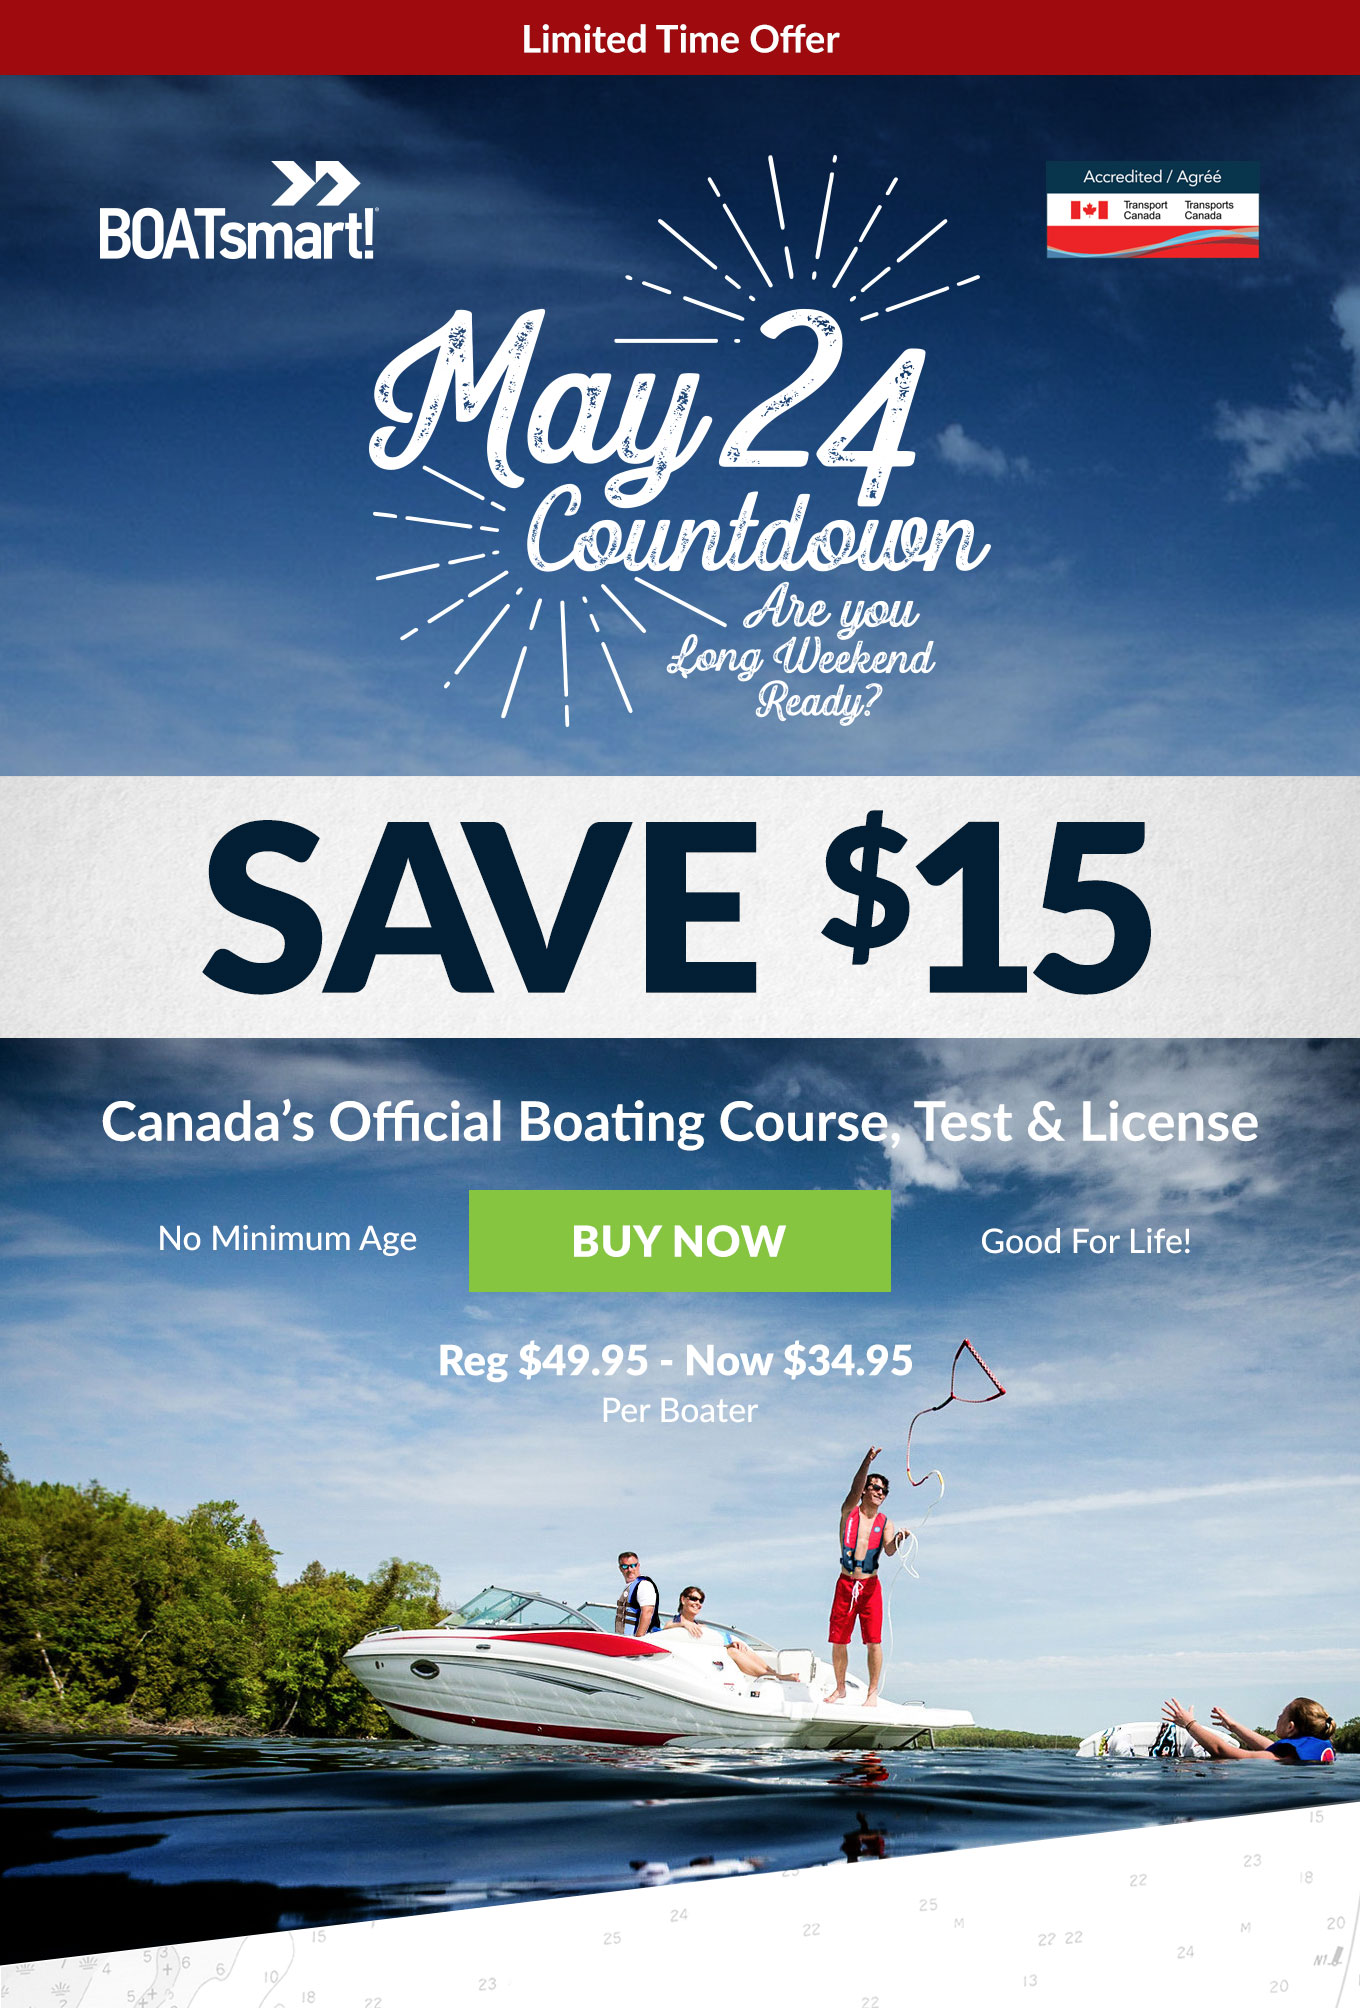 May 24 Countdown are you long weekend ready? Save $15 on Canada's Official Boating Course Test & License